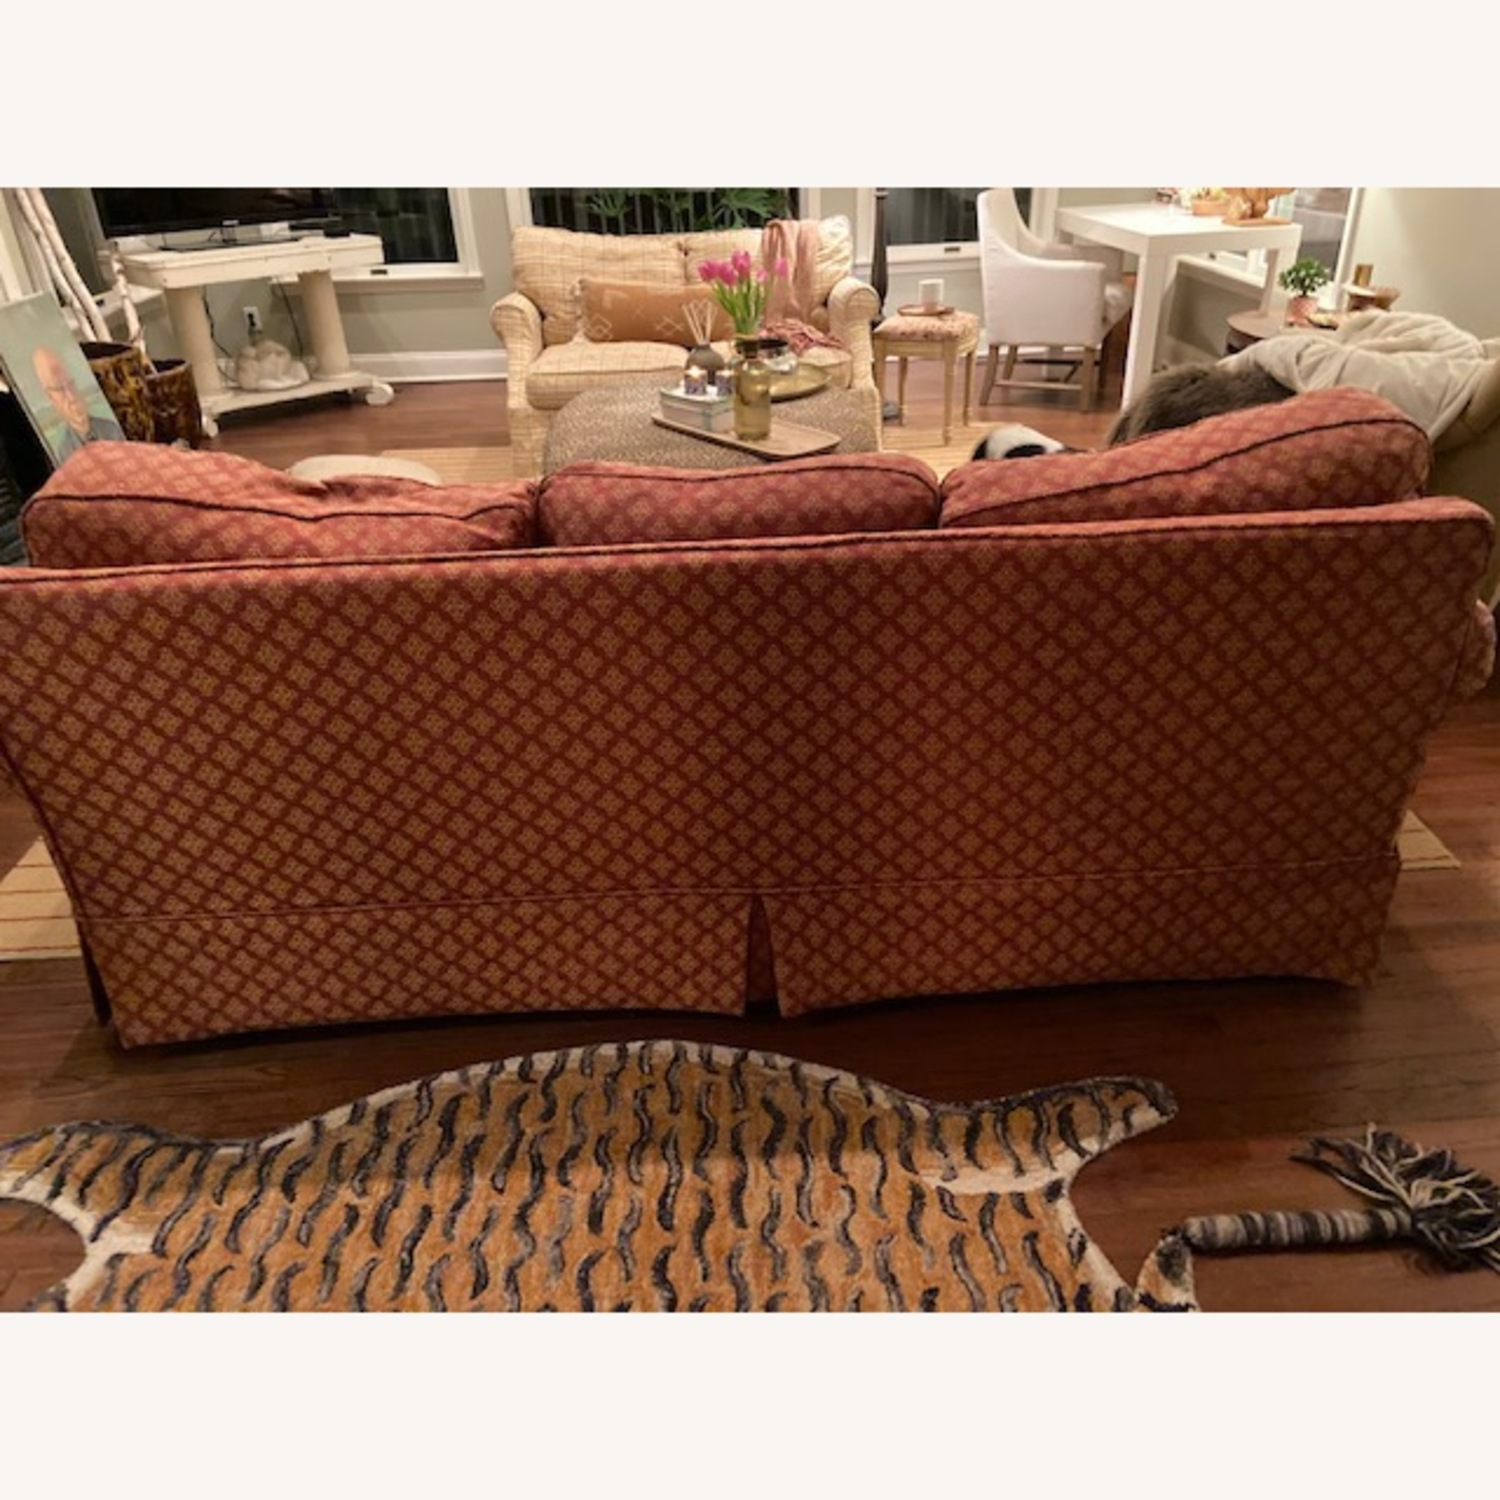 Lillian August Slip Covered Couch - image-3